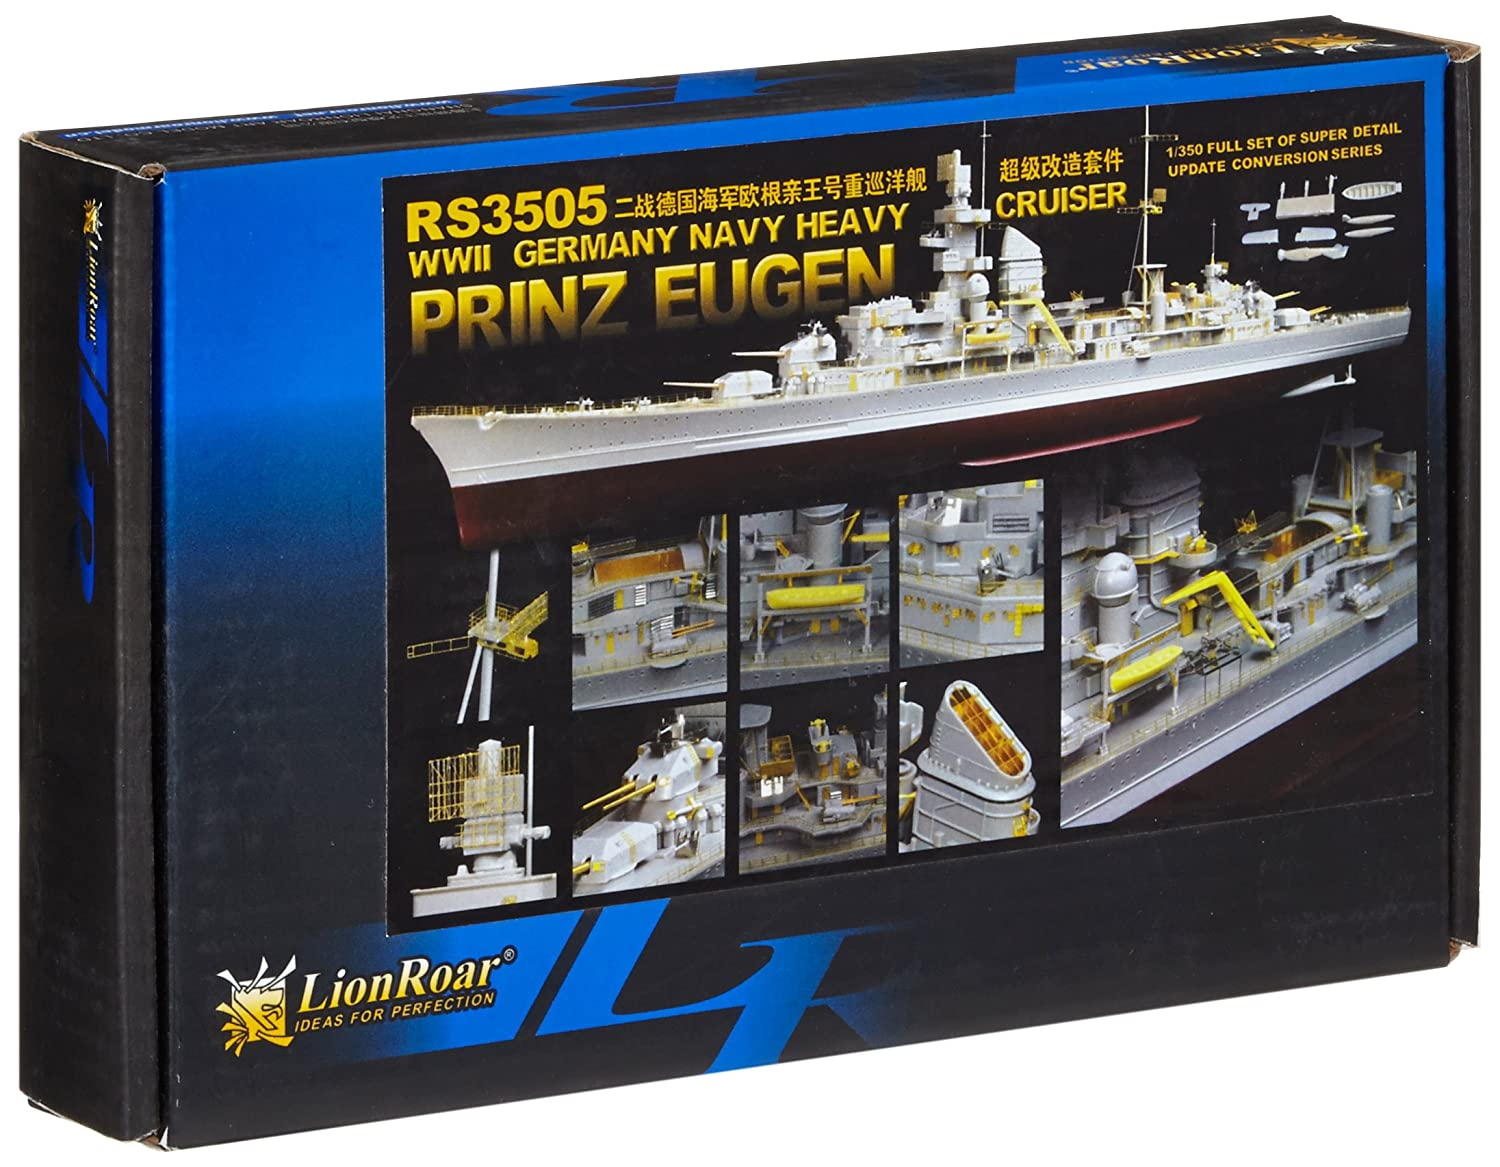 Lion Roar-GreatwallHobby RS3505 - WWII German German WWII Navy Heavy Cruiser Prince Eugen (TRU) 59d303